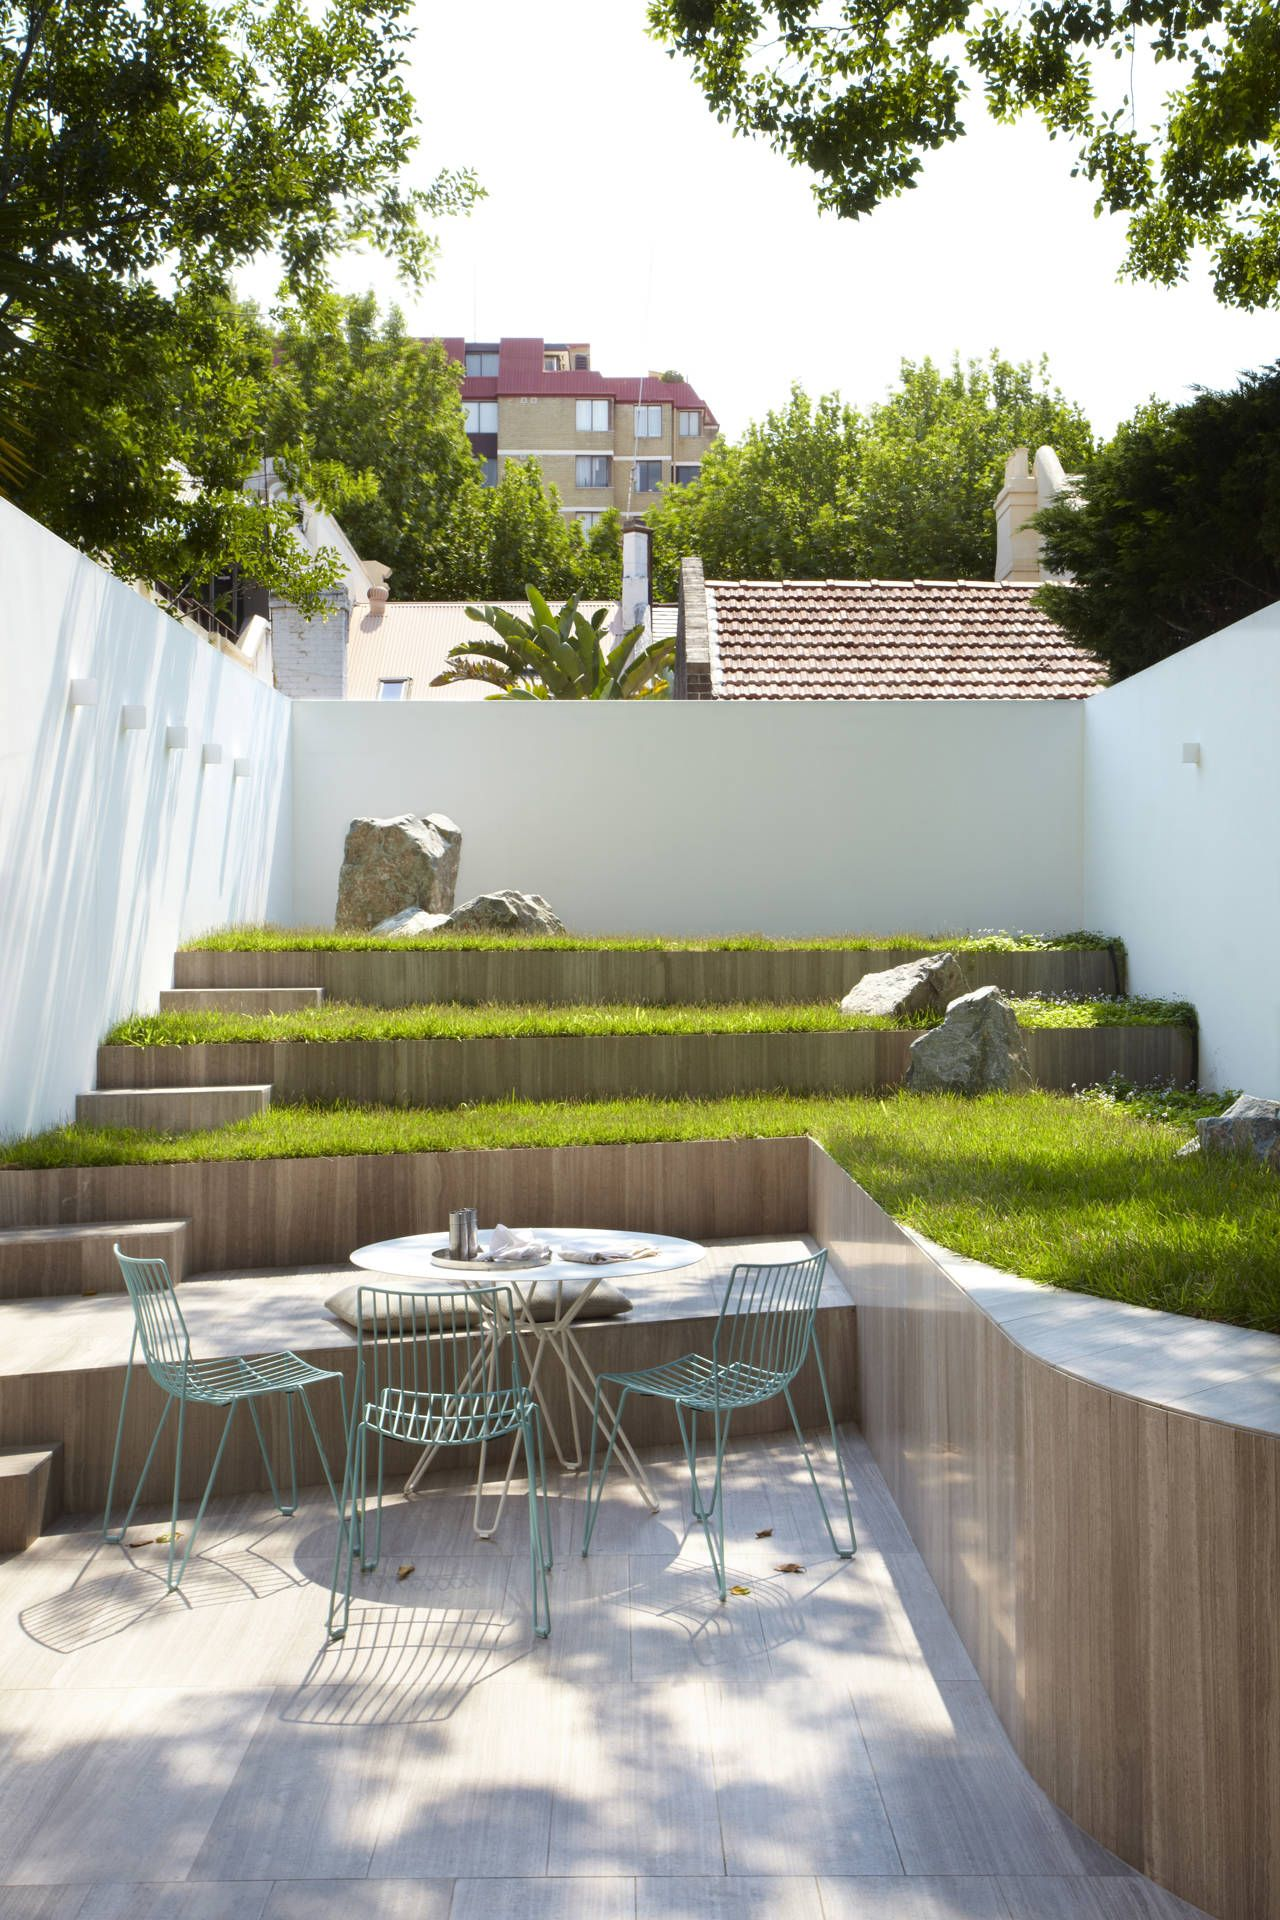 Terraced Gardens - How To Take Beauty To The Next Level on Terraced Yard Landscape Ideas id=16198